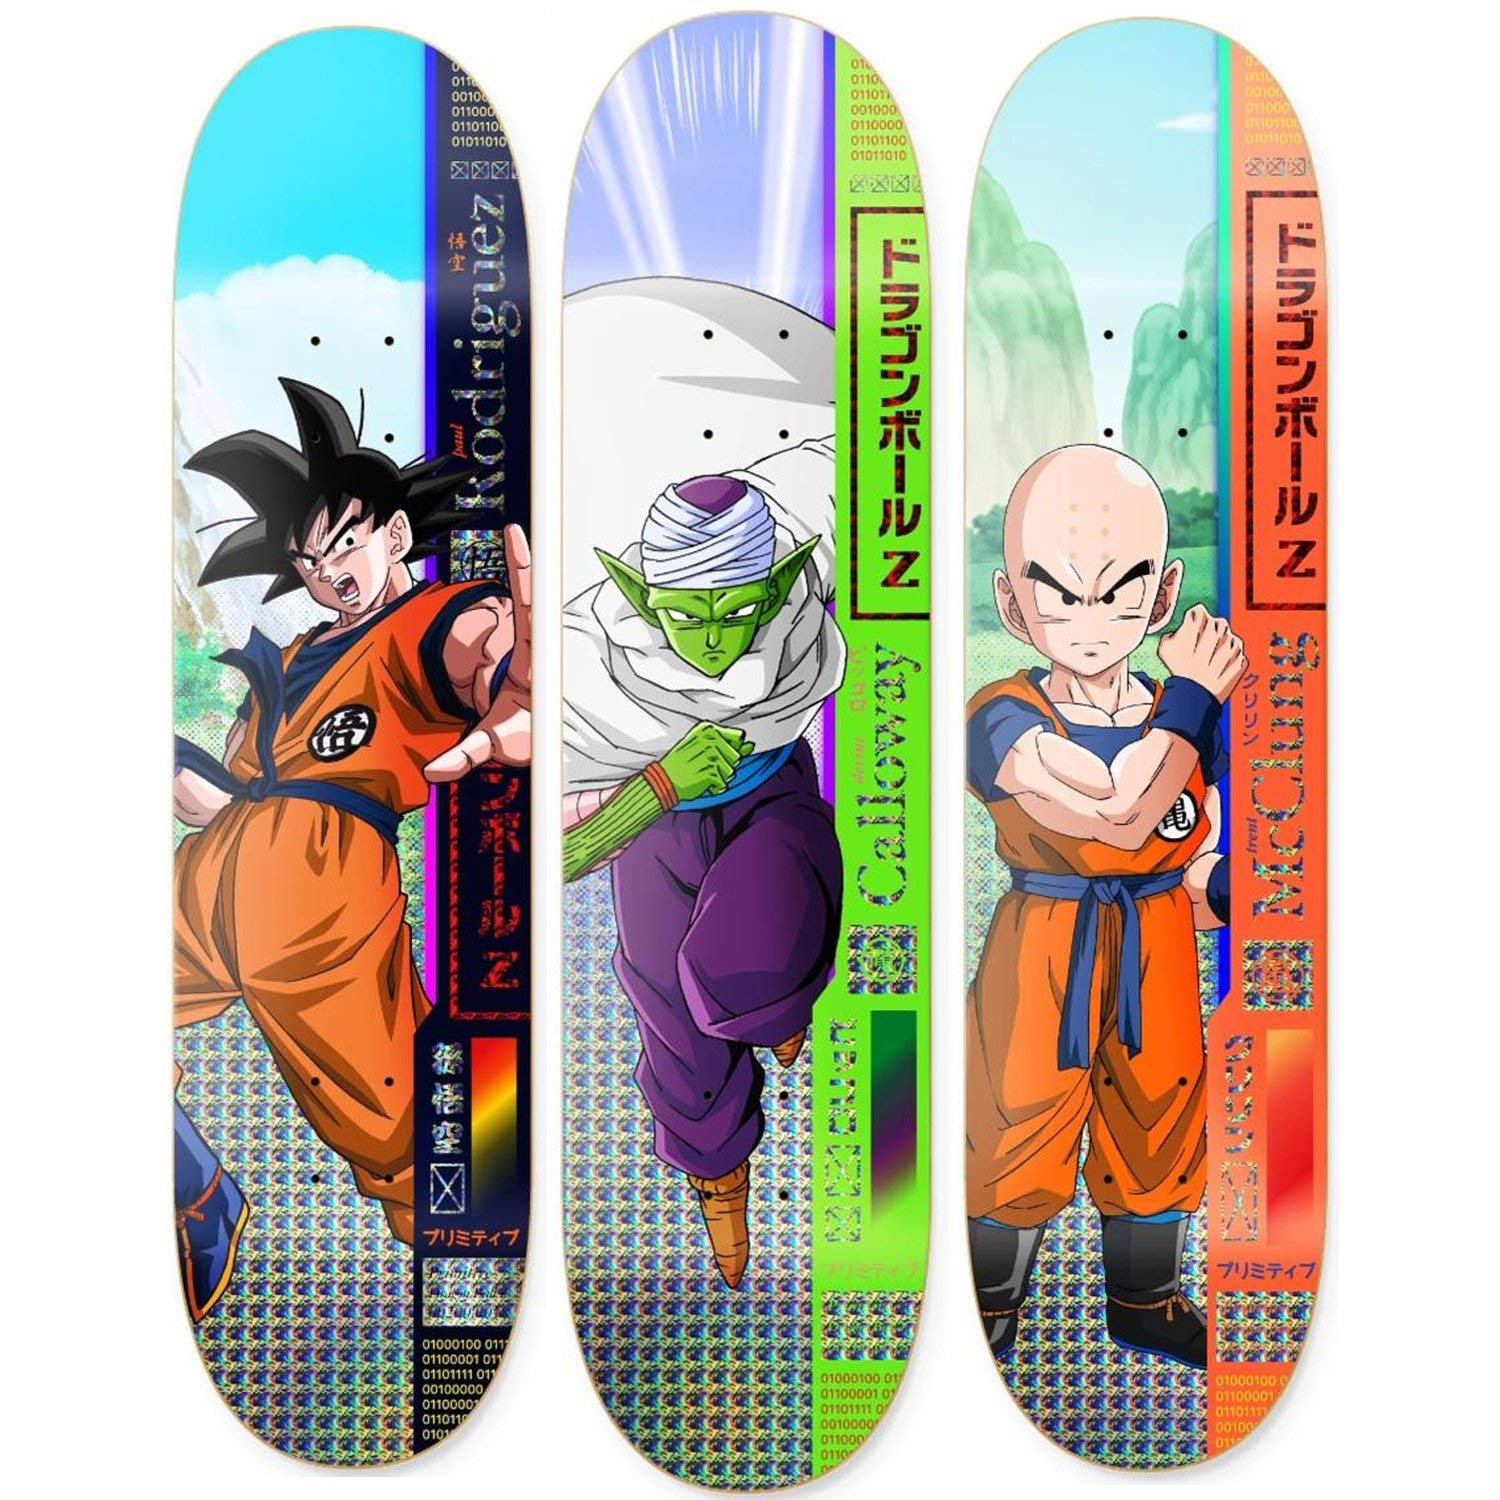 Primitive Dragon Ball Z Skateboard Decks Goku Piccolo Krillin 3 Pack DBZ Deck